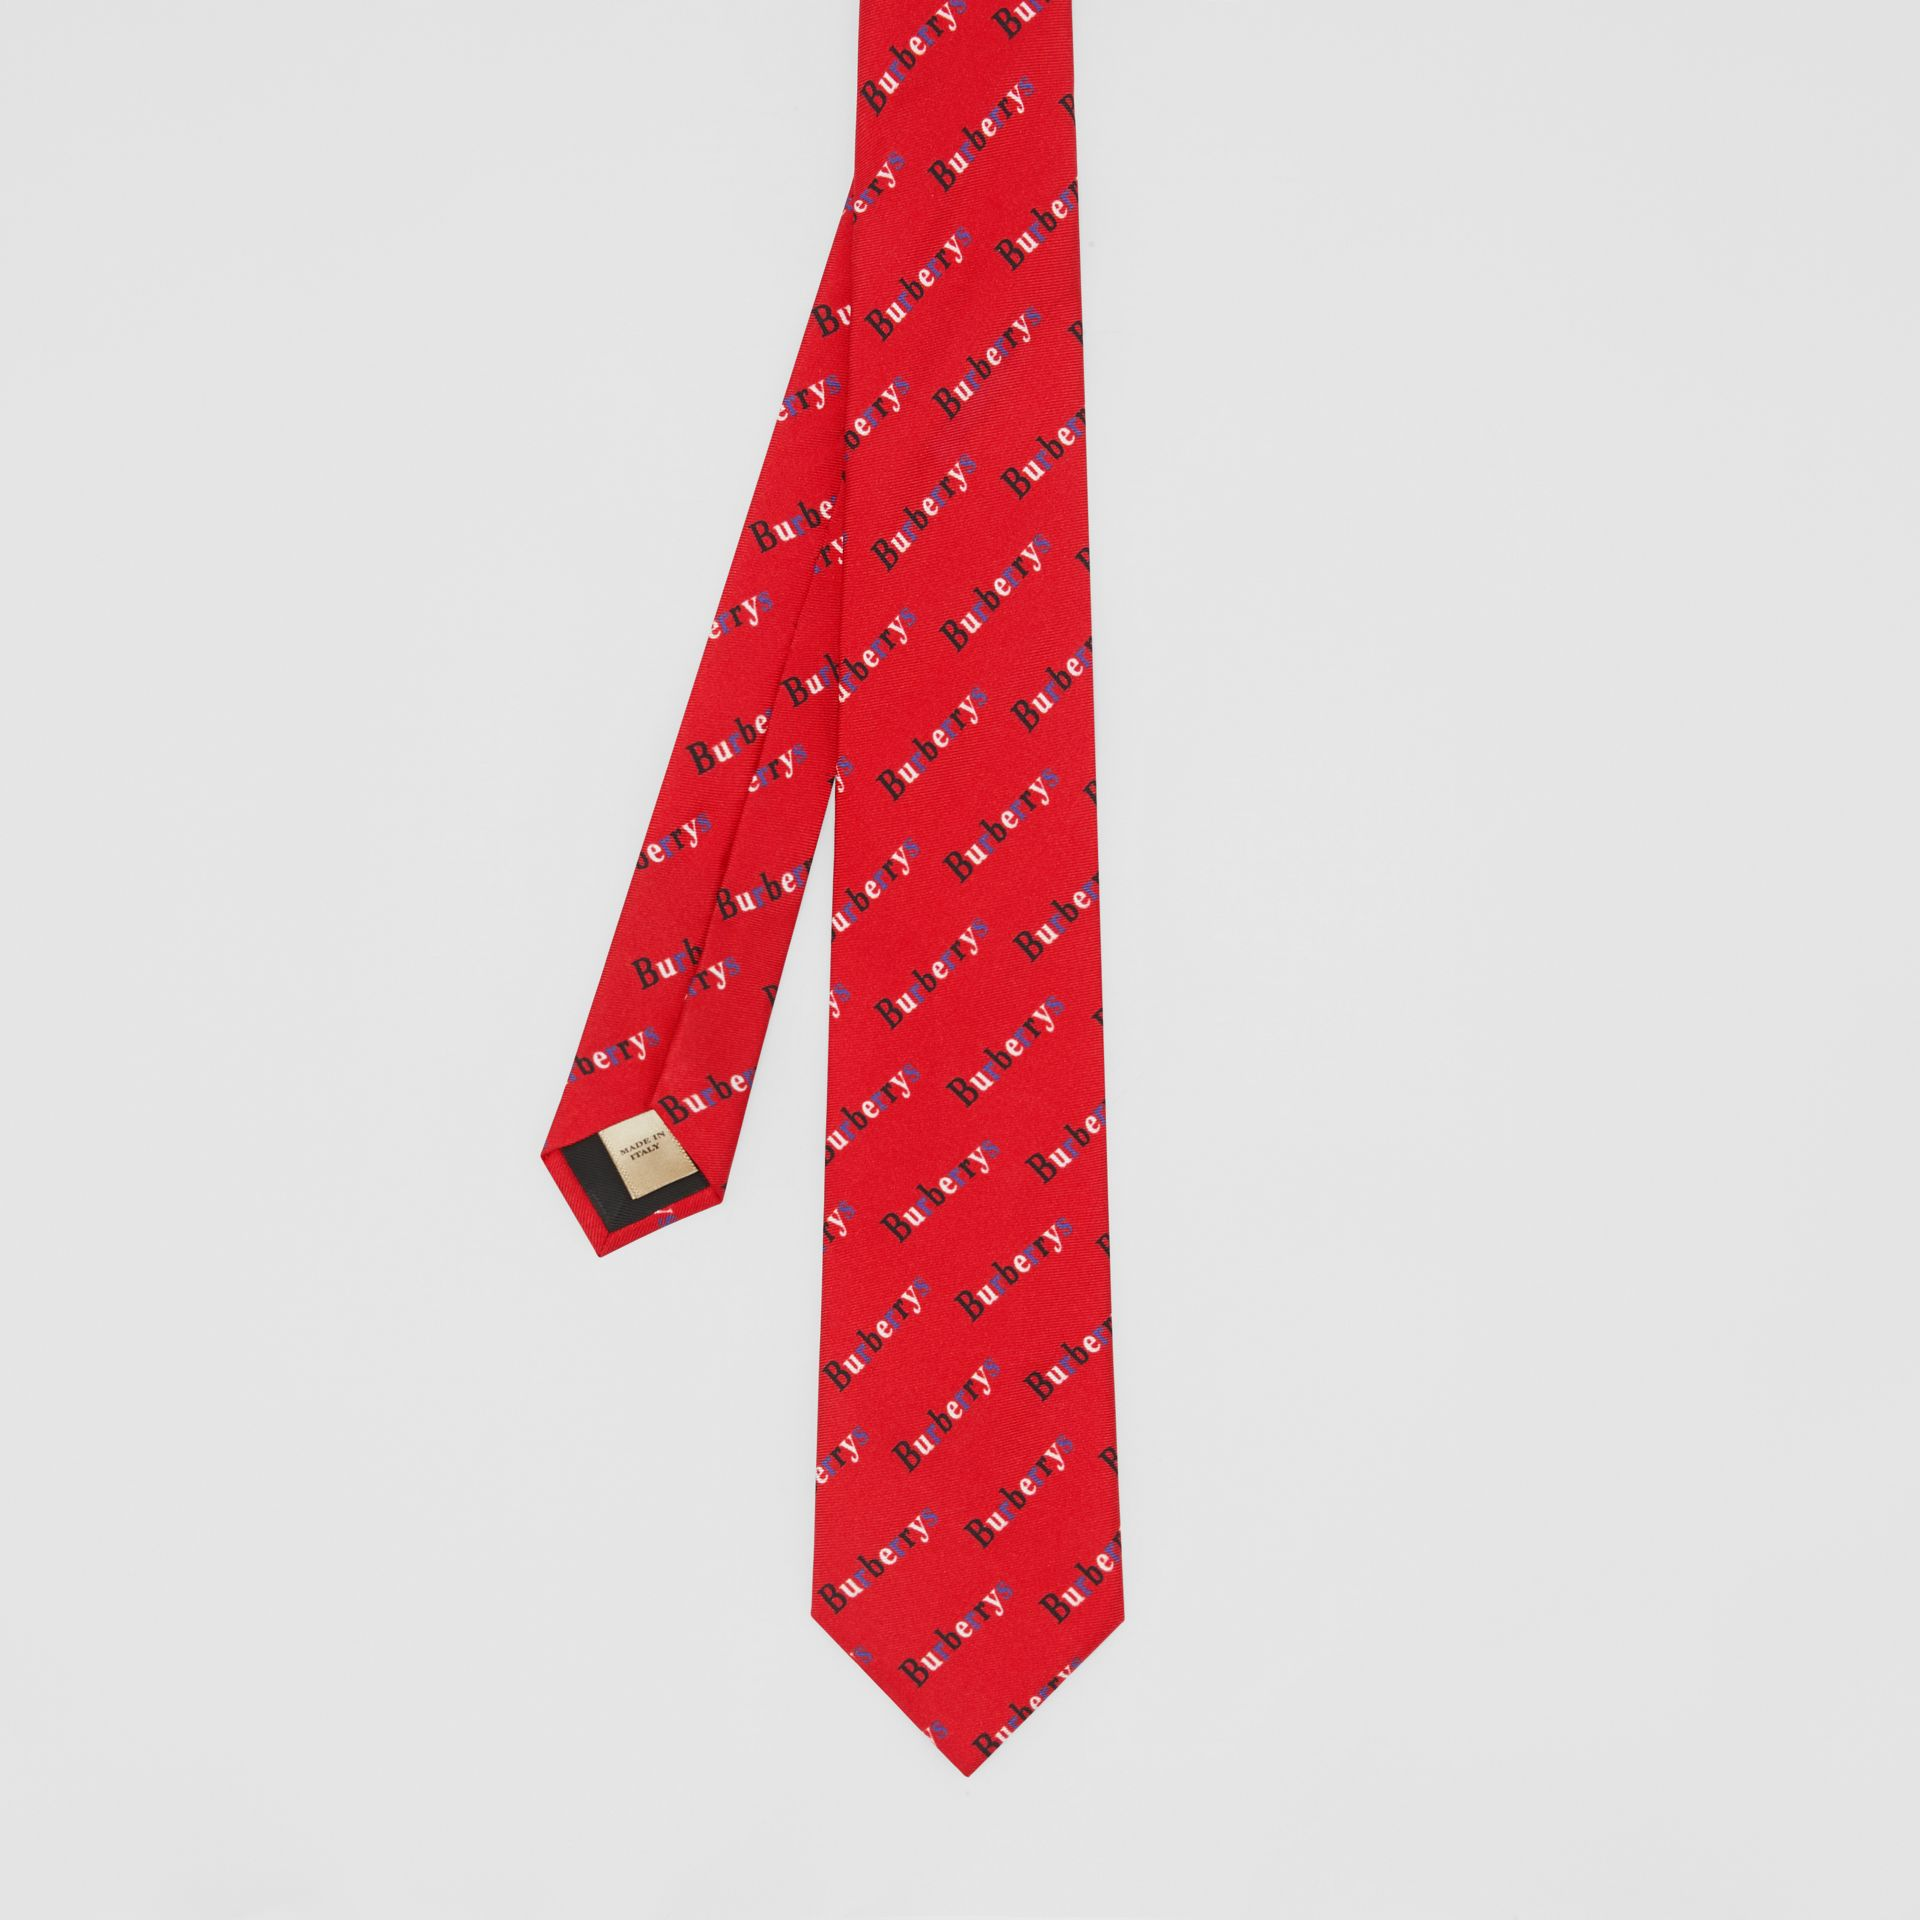 Modern Cut Archive Logo Print Silk Tie in Parade Red - Men | Burberry - gallery image 3